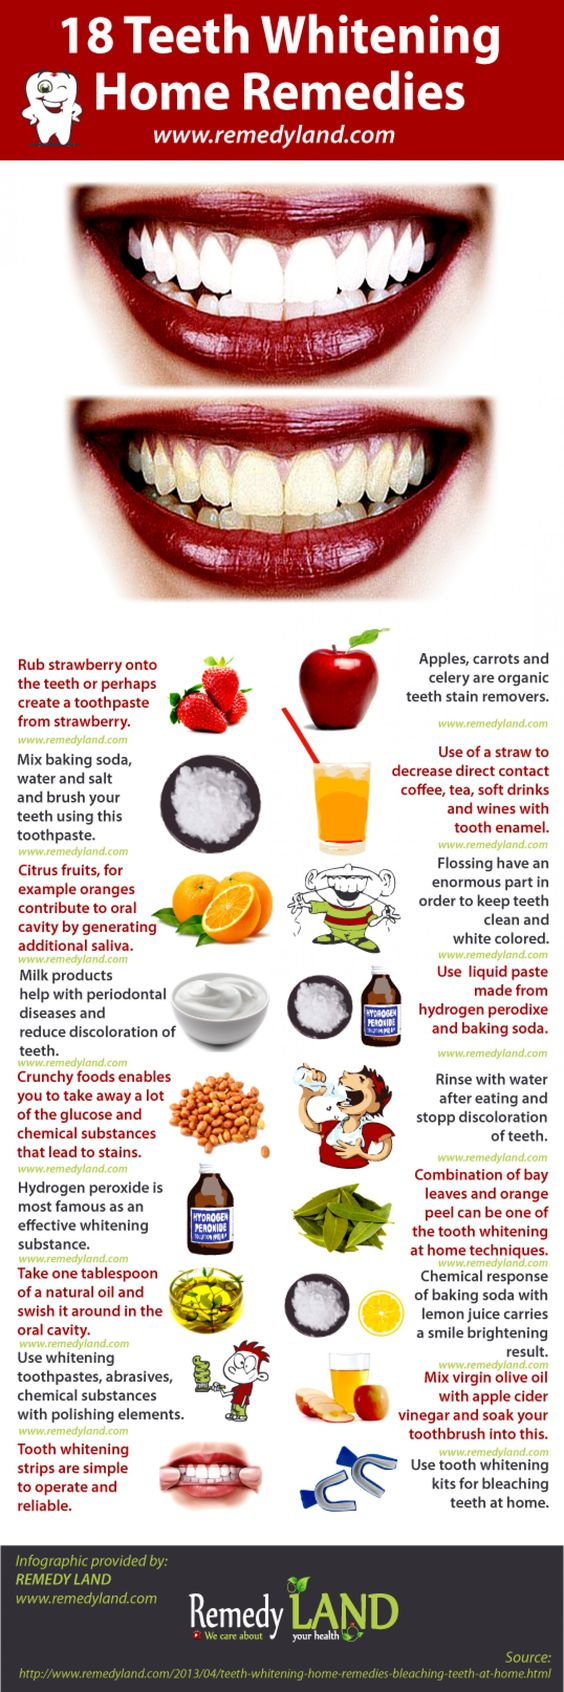 Teeth Whitening Home Remedies